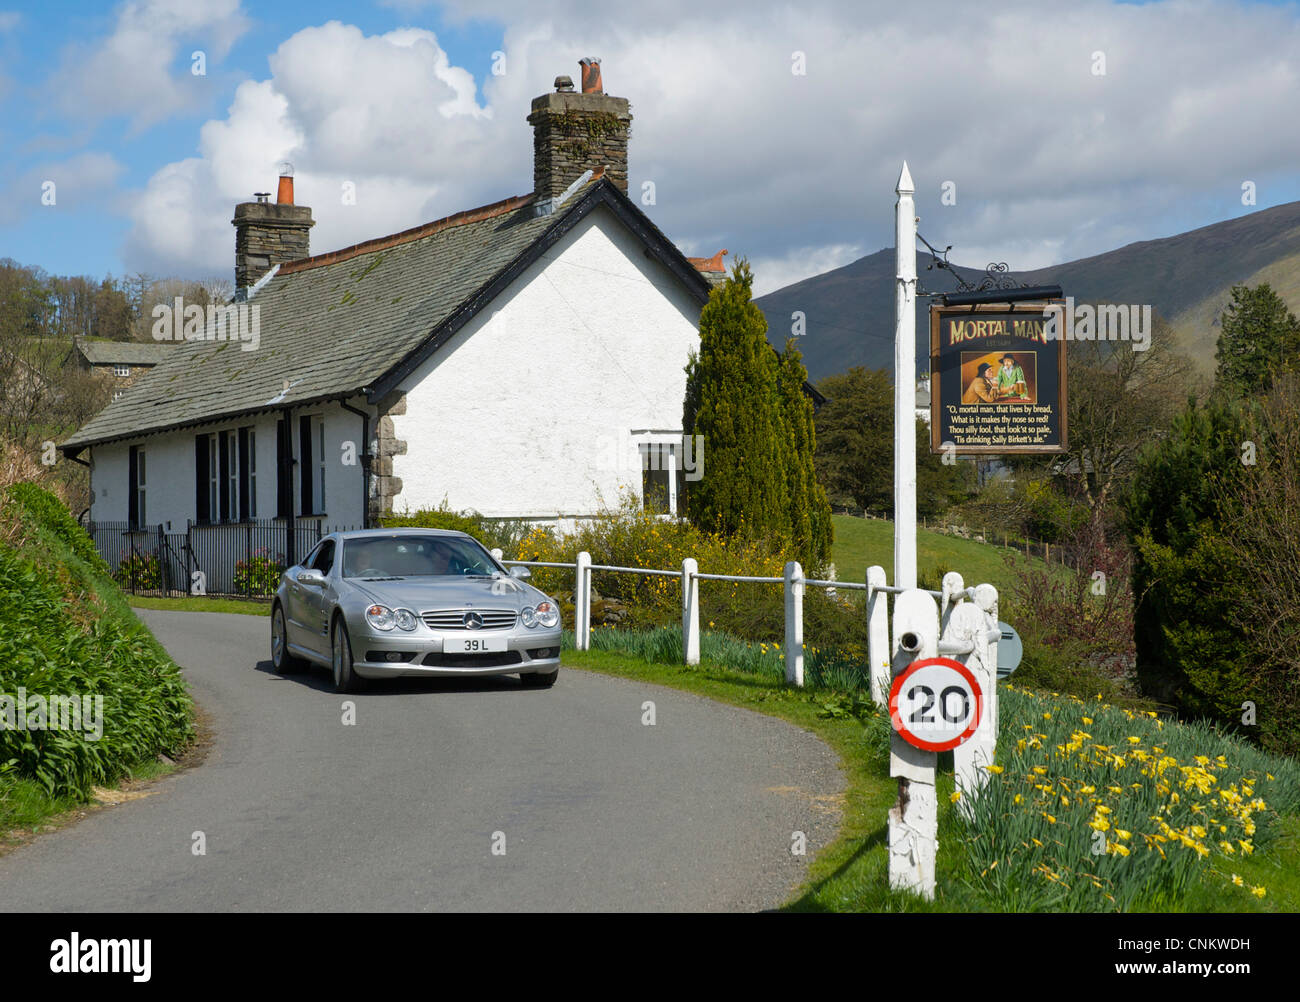 Sign for the Mortal Man pub in the village of Troutbeck, Lake District National Park, Cumbria, England UK - Stock Image